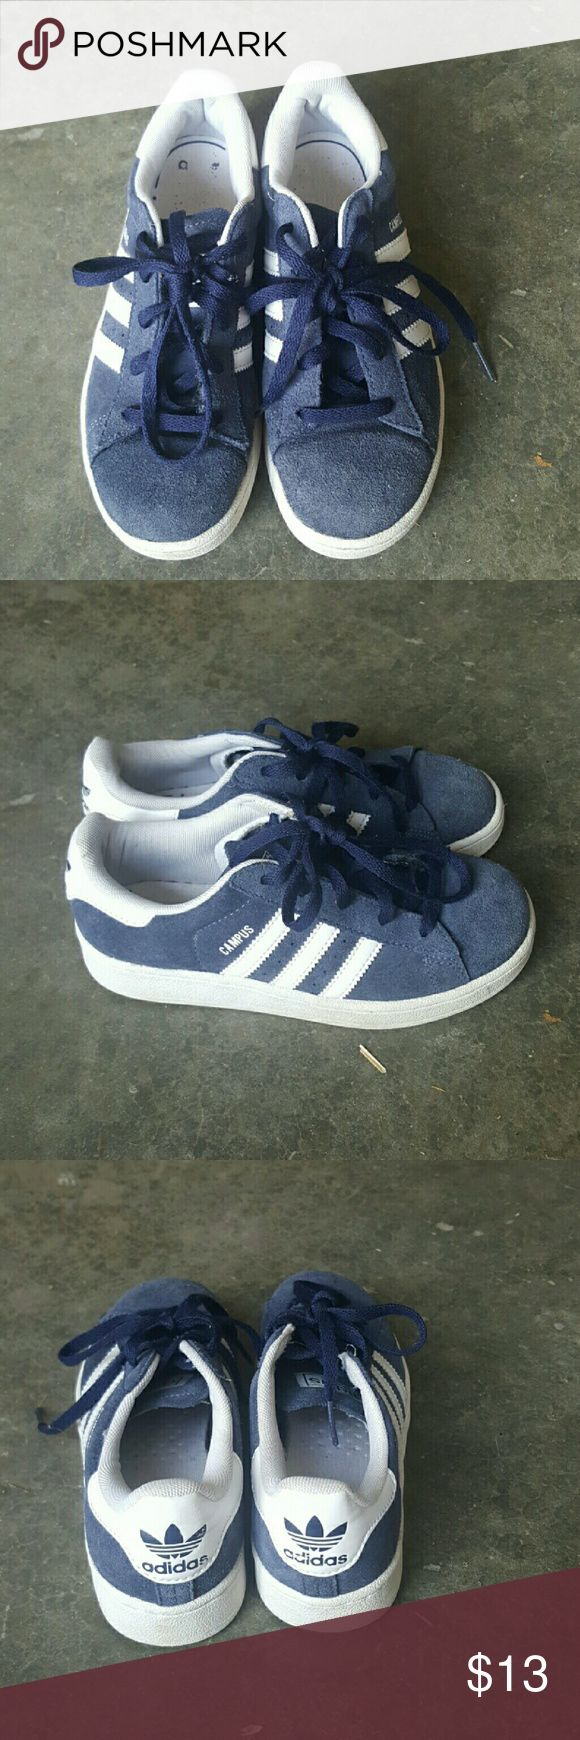 Adidad Boys Youth Campus Sneakers Sizw 1 EUC Boys Adidas Campus Sneakers. NAVY ASUEDE WITH minimal wear. Adidas Shoes Sneakers